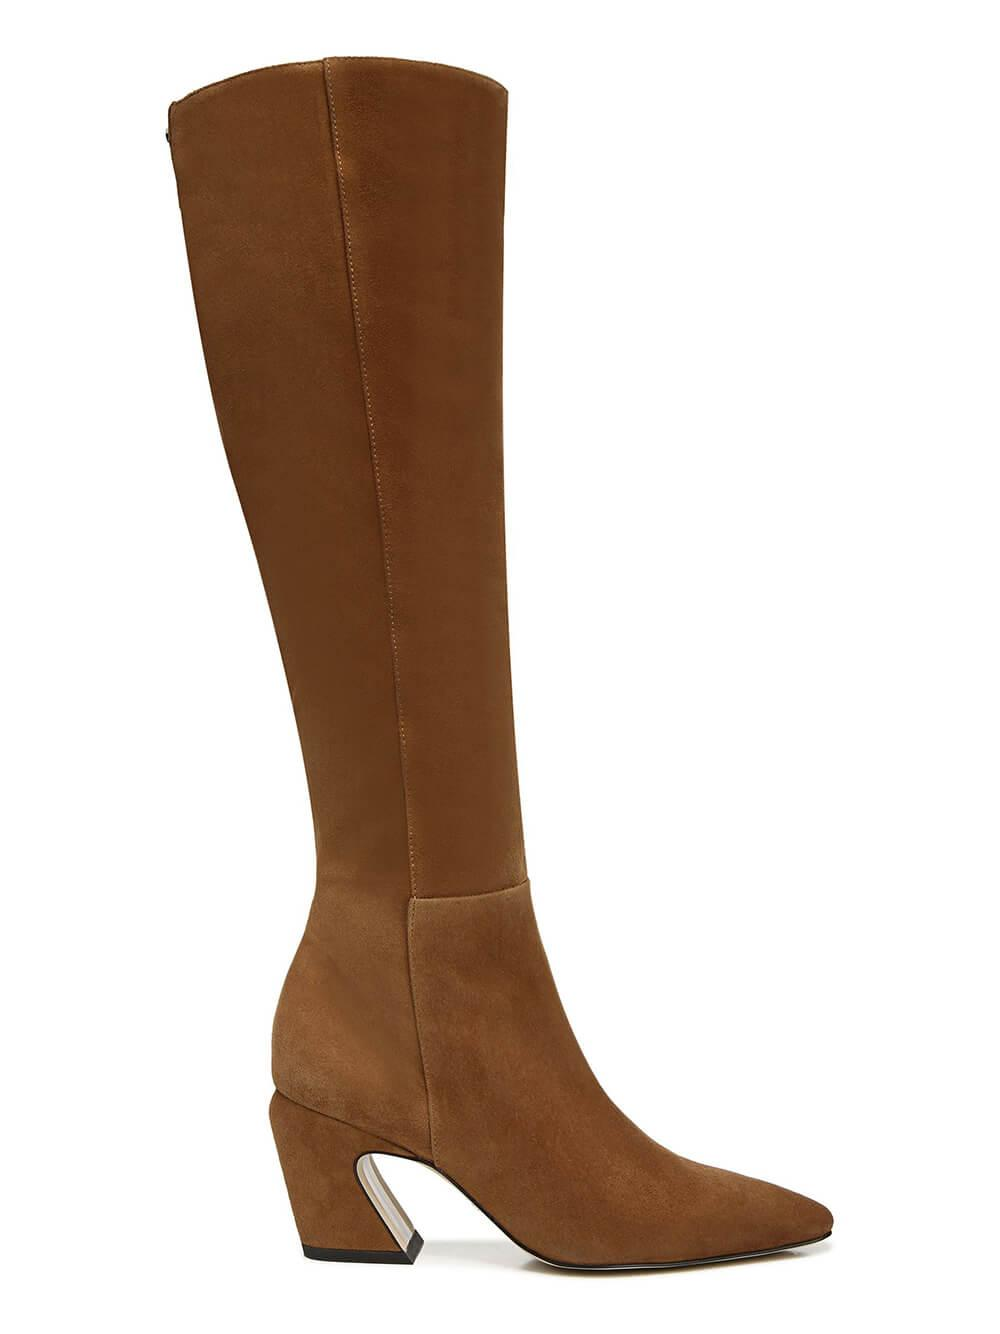 Sulema Suede Tall Boot Item # SULEMA